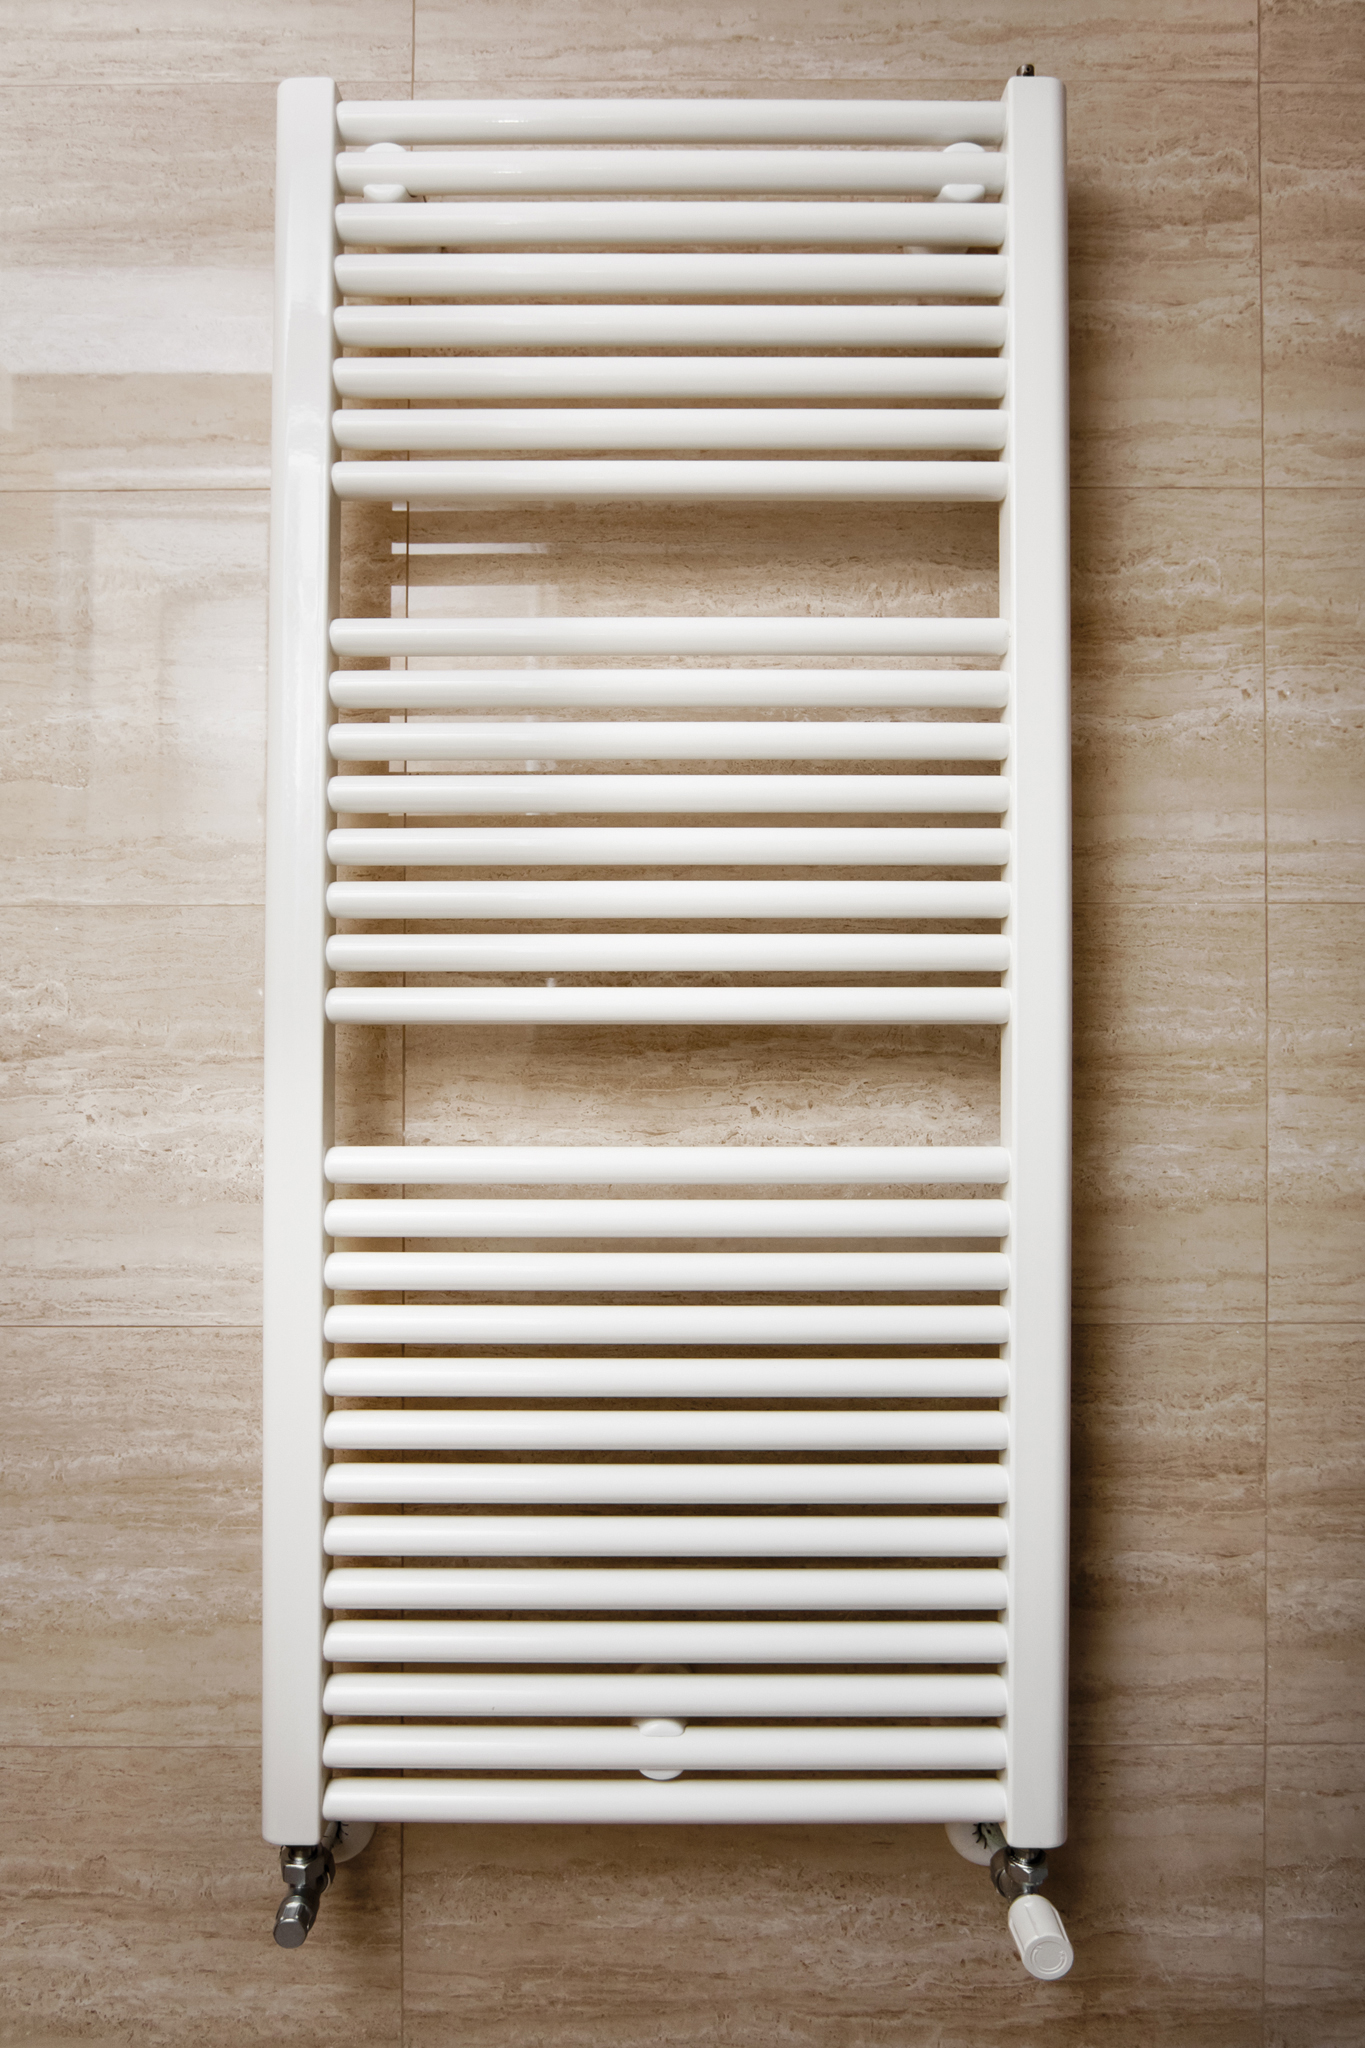 radiateur pour chauffage central castorama. Black Bedroom Furniture Sets. Home Design Ideas